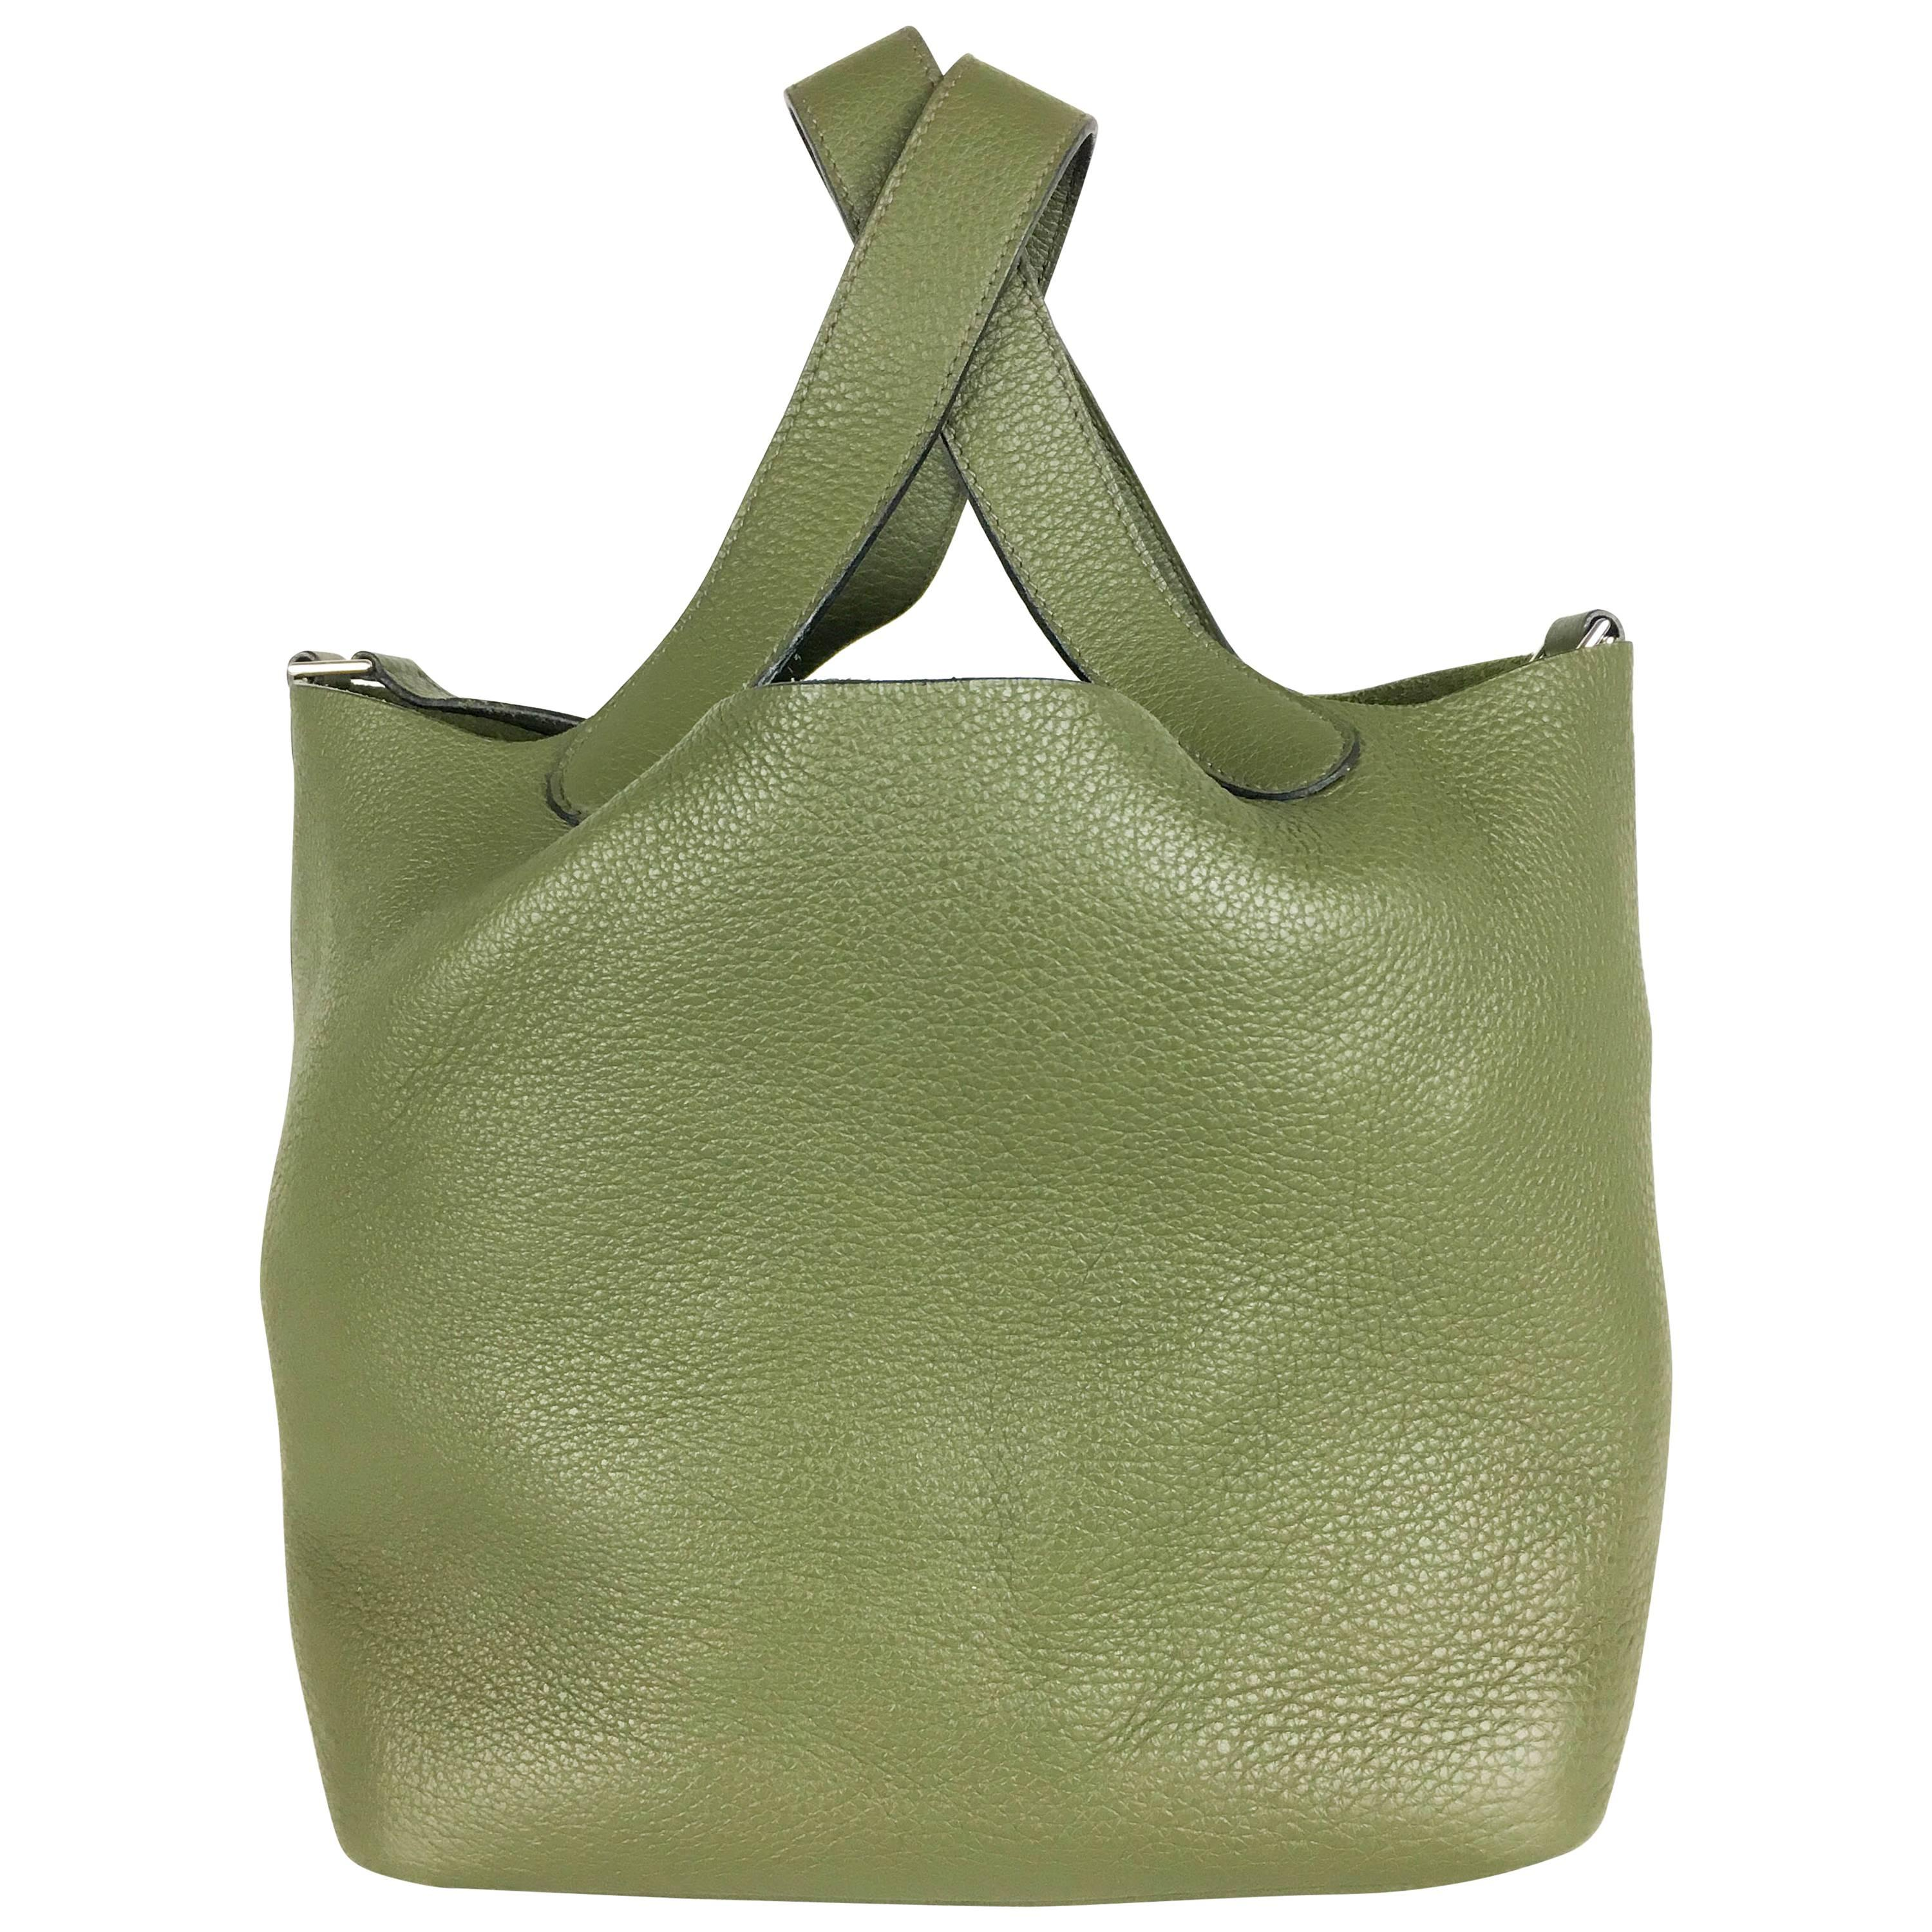 aa3b0aa7c06f4 ... inexpensive 2007 hermes picotin 22 handbag in olive green clemence  leather for sale dc0d4 fb6aa